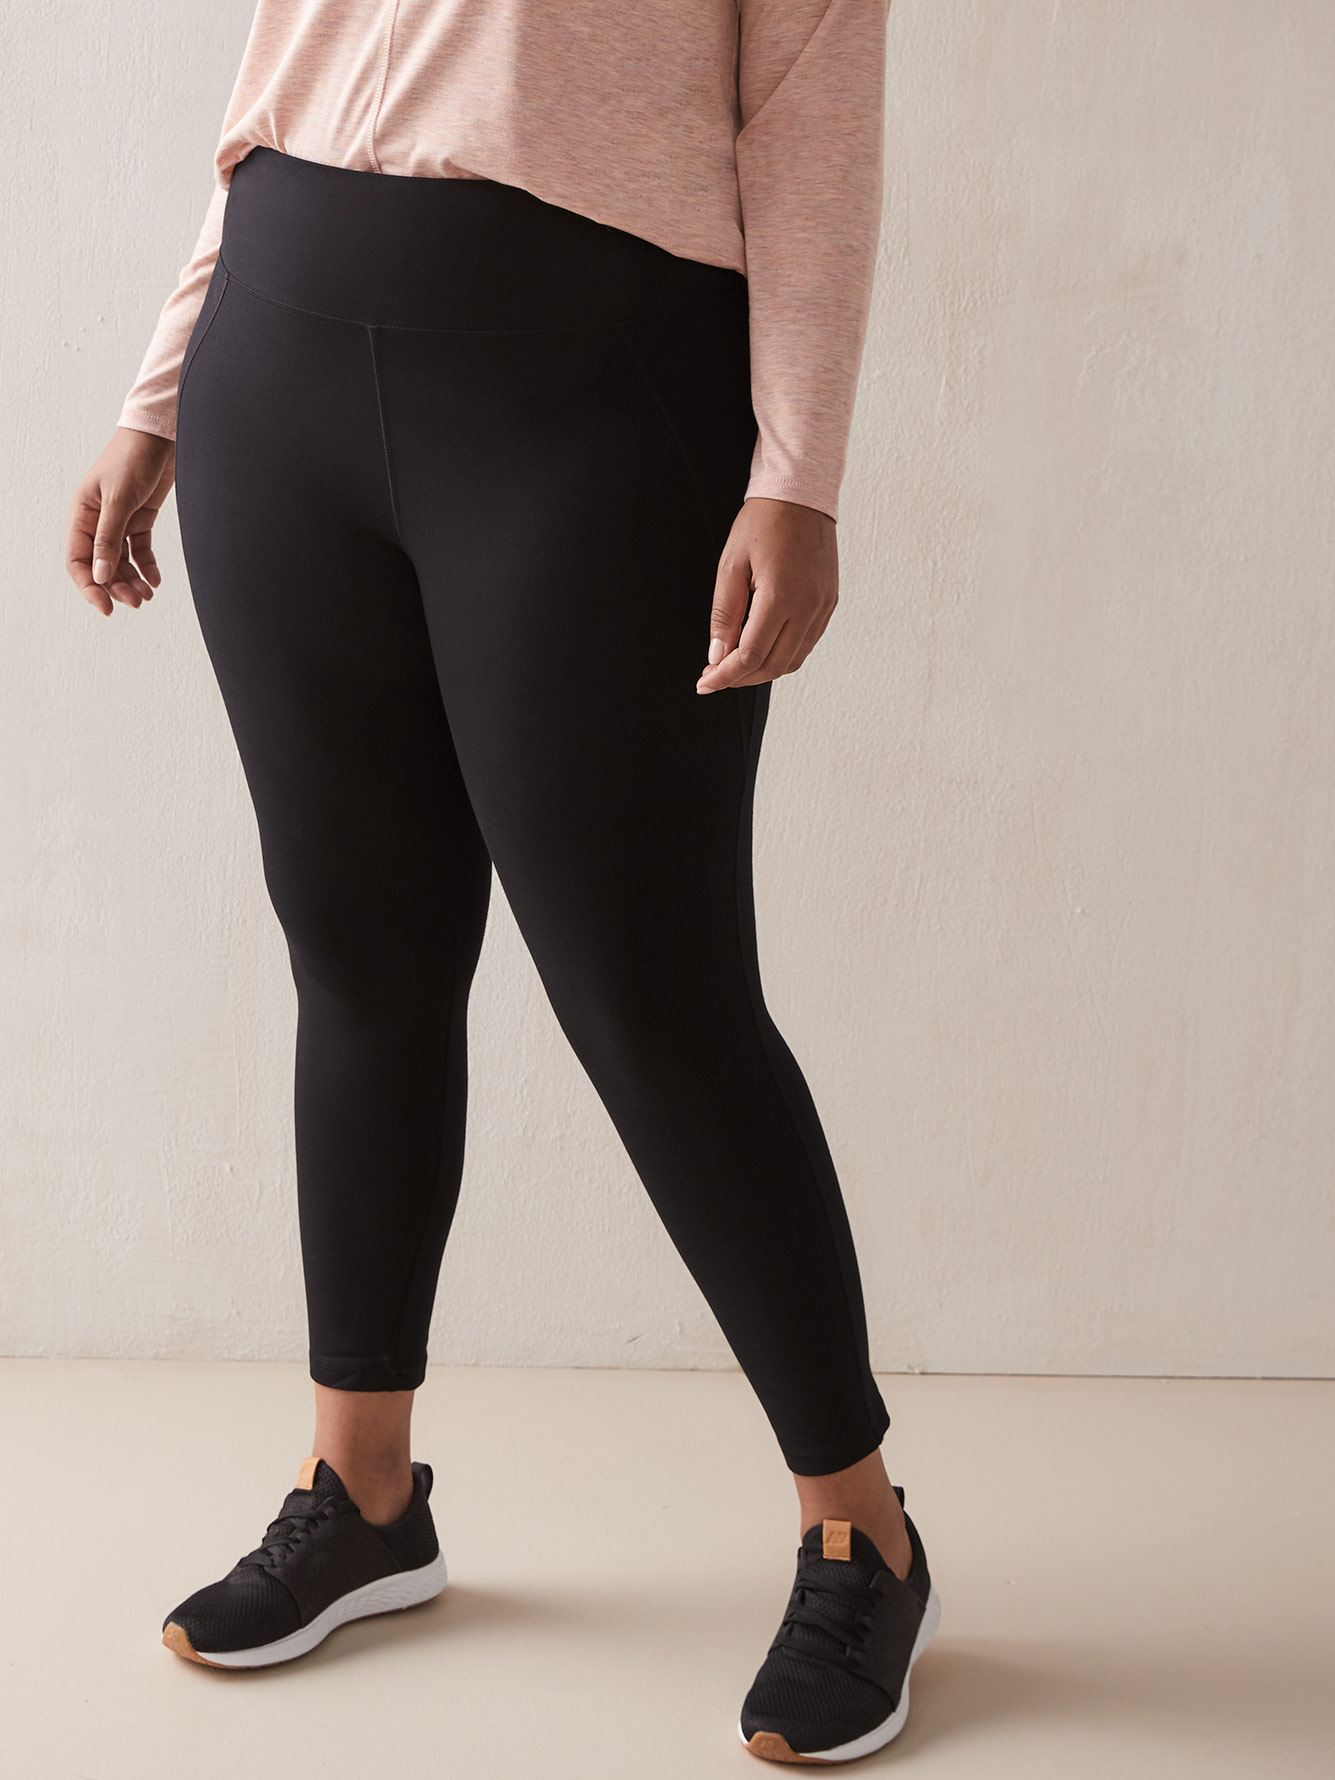 Basic Black Legging - ActiveZone